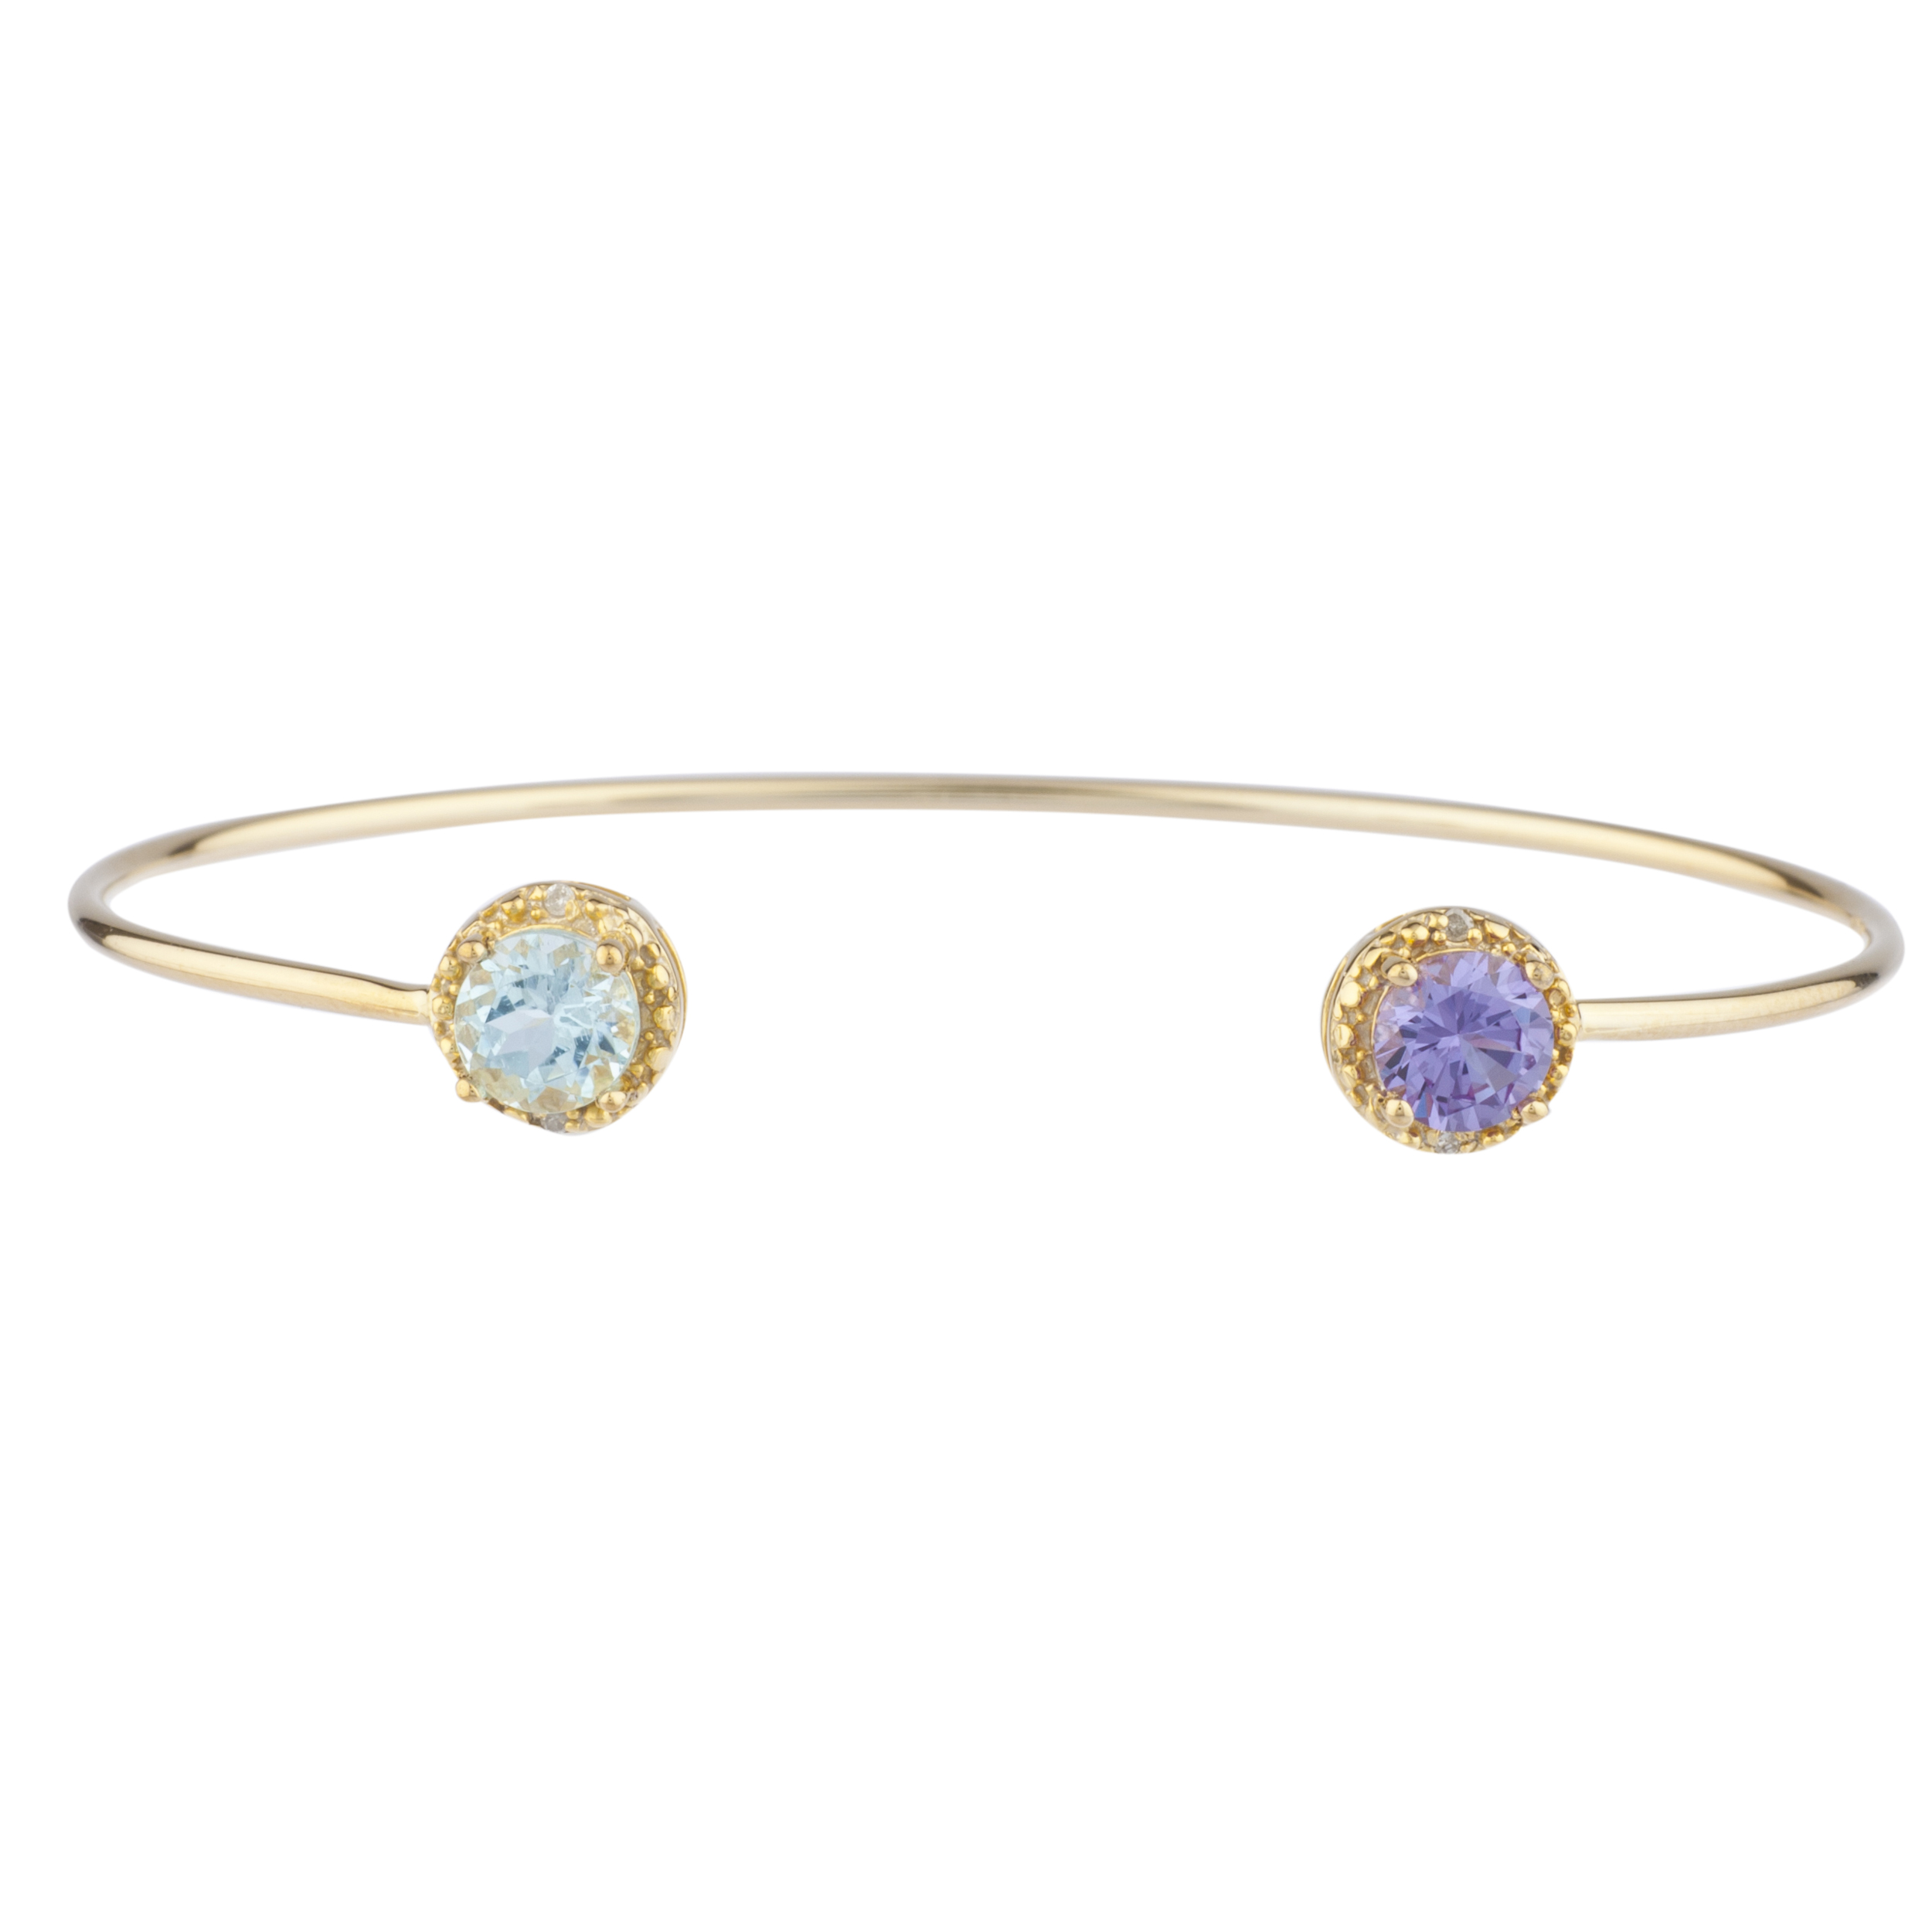 Genuine Aquamarine & Amethyst Diamond Bangle Round Bracelet 14Kt Yellow Gold Plated Over .925 Sterling Silver by Elizabeth Jewelry Inc